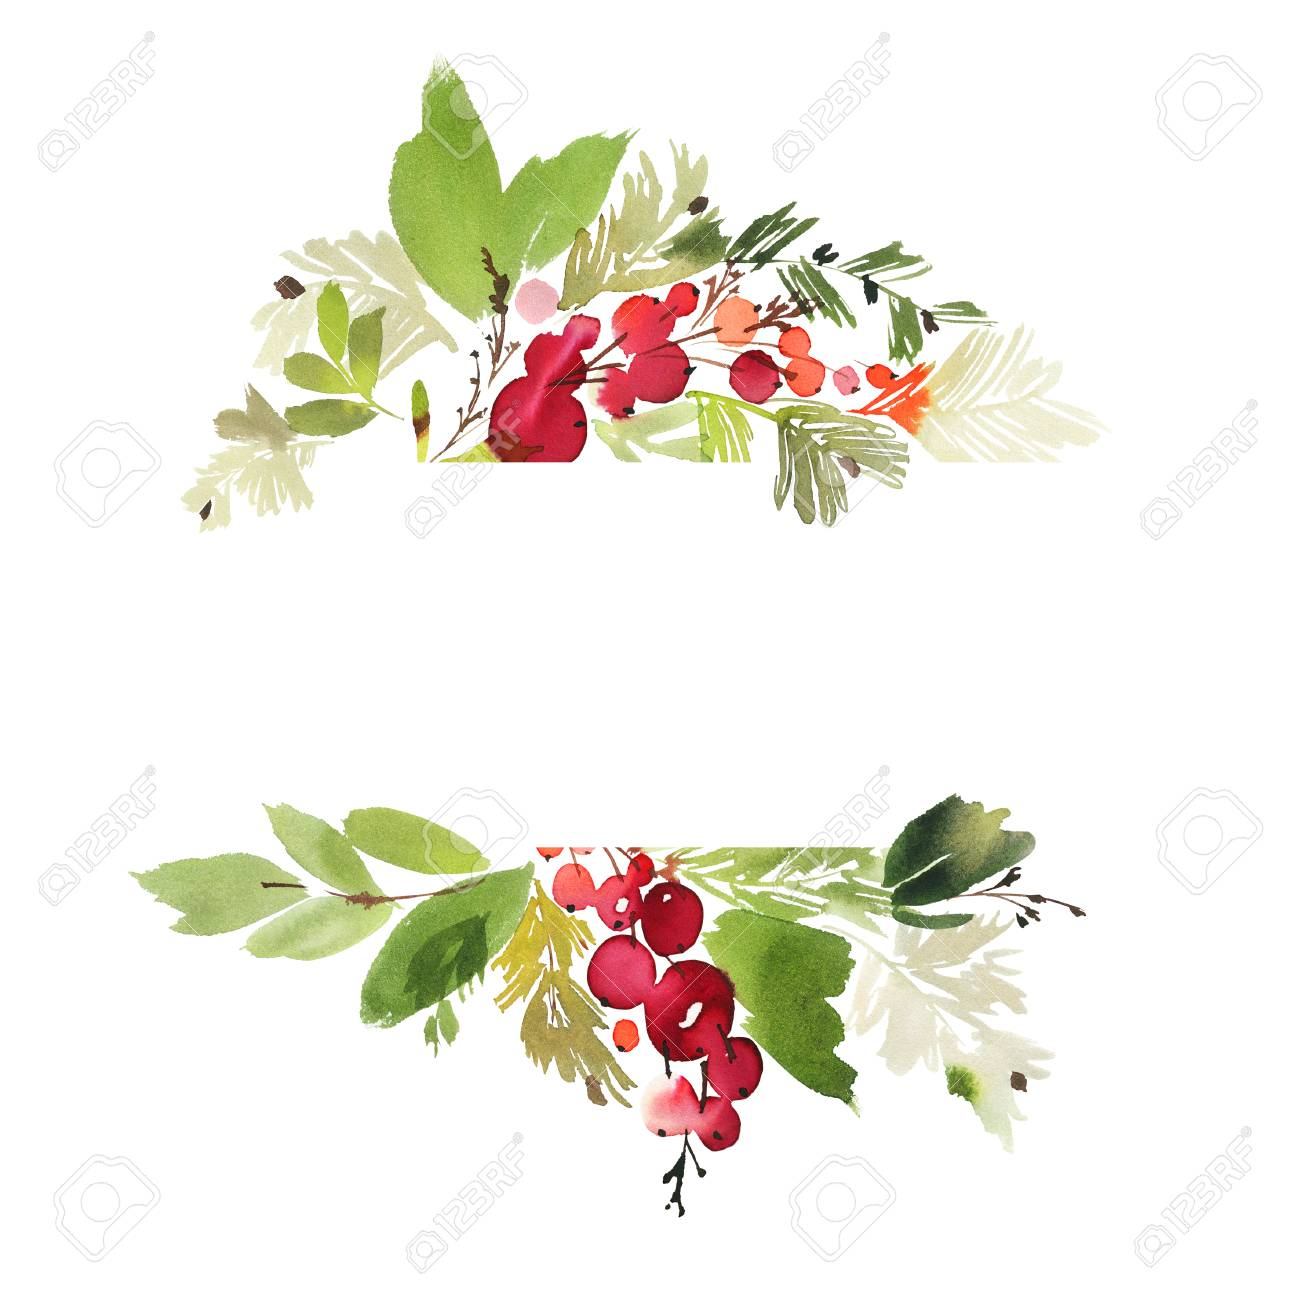 Christmas Watercolor Card With Berries And Flowers Stock Photo Picture And Royalty Free Image Image 88604601